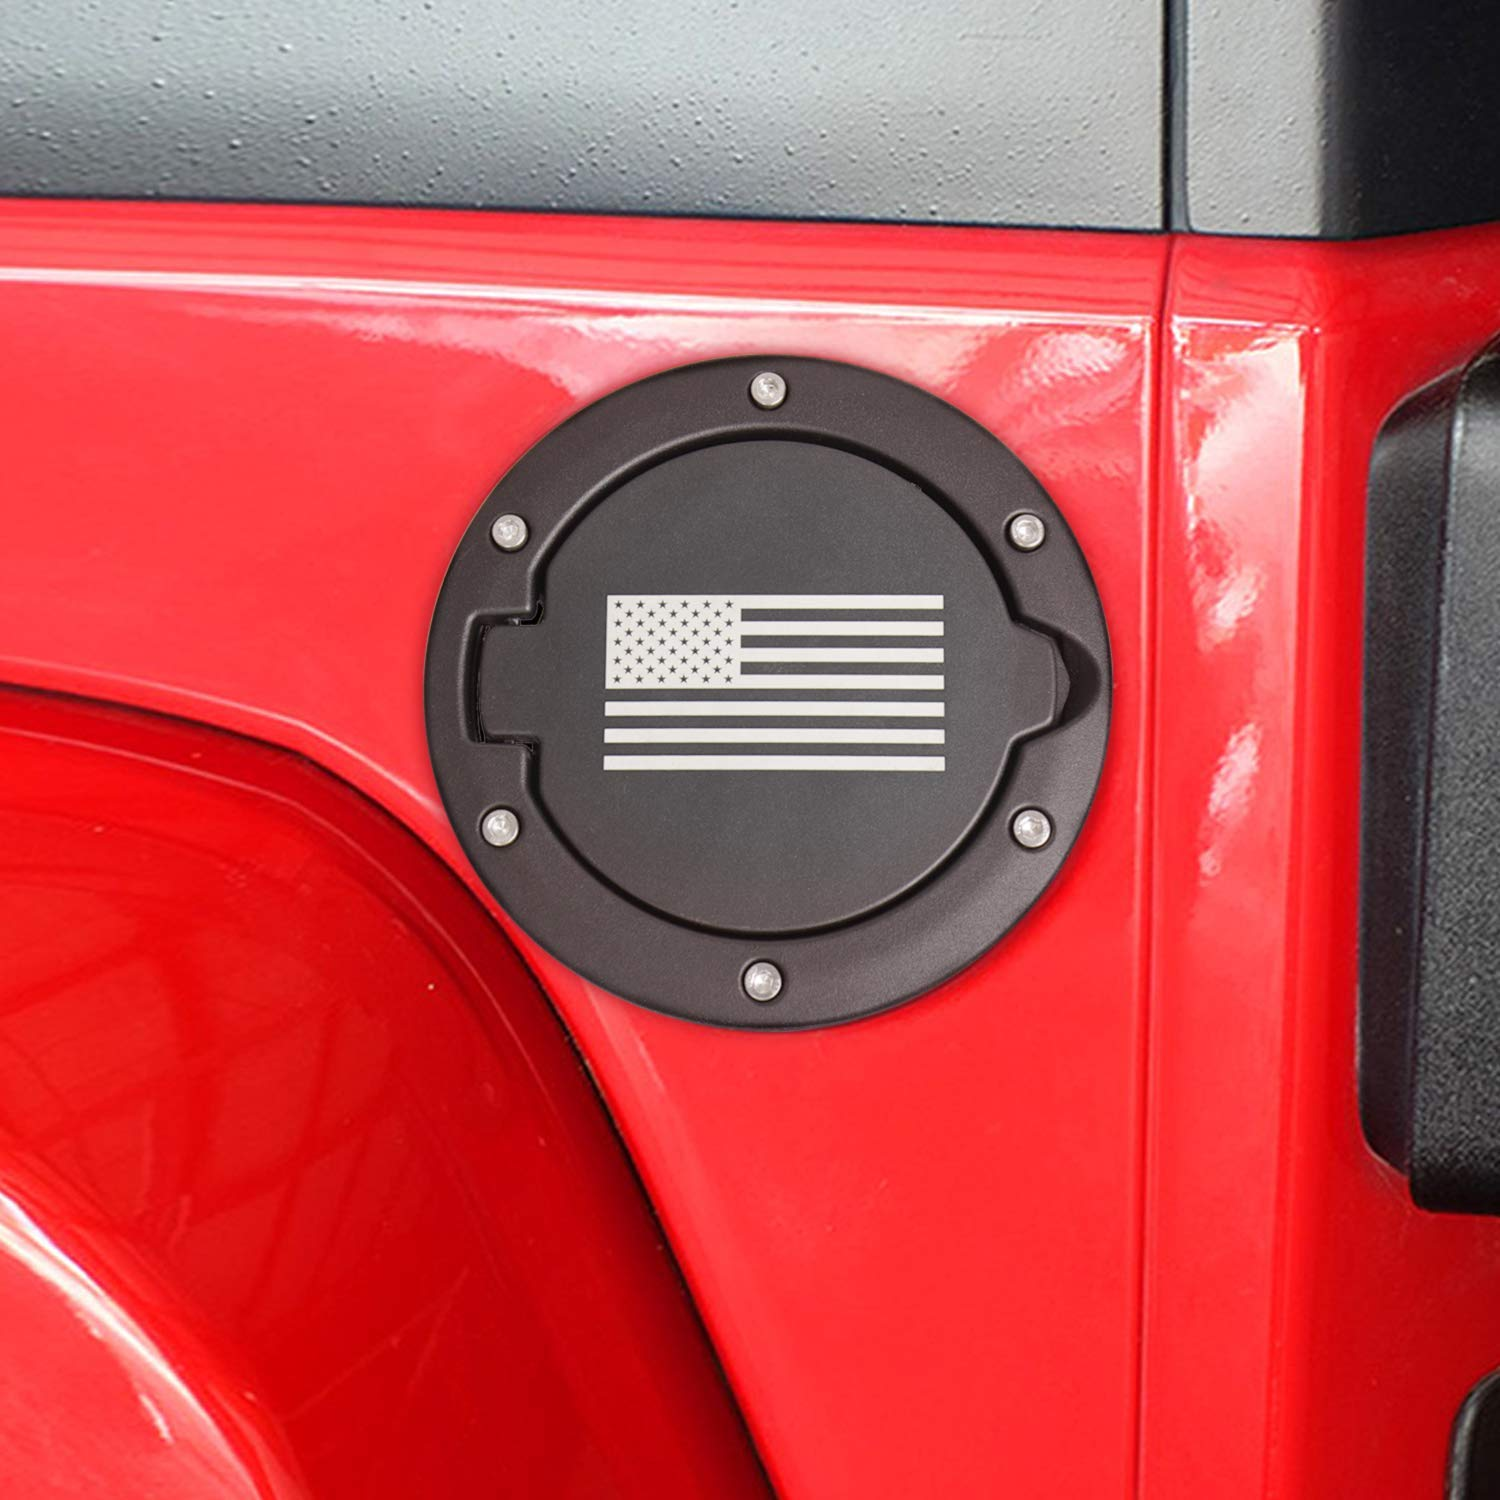 Gas Tank Cap for 2007-2017 Jeep Wrangler JK /& Unlimited 2-Door 4-Door USA Flag-Red /& Blue Fuel Filler Door Cover